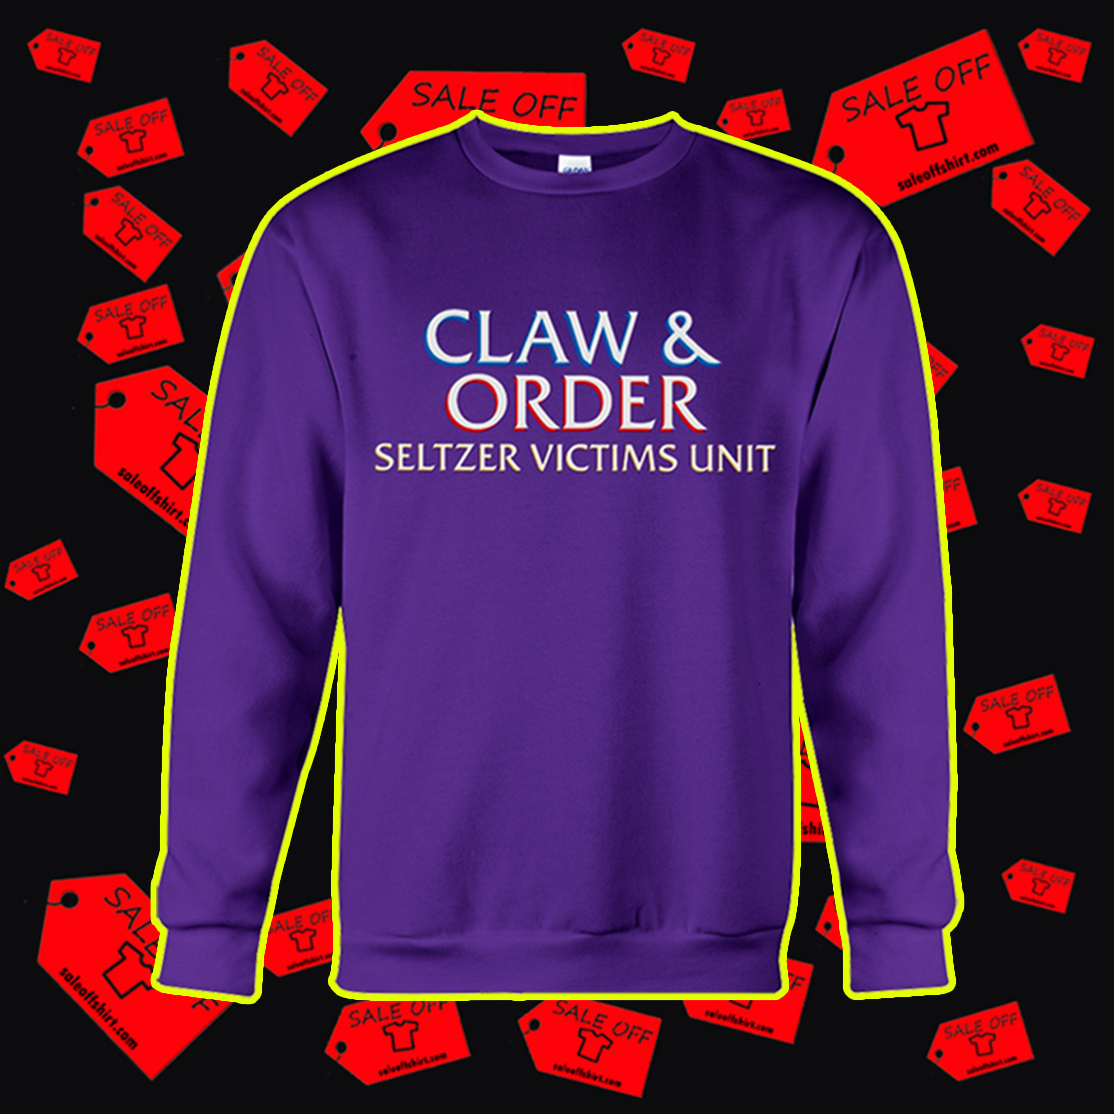 Claw and order seltzer victims unit sweatshirt